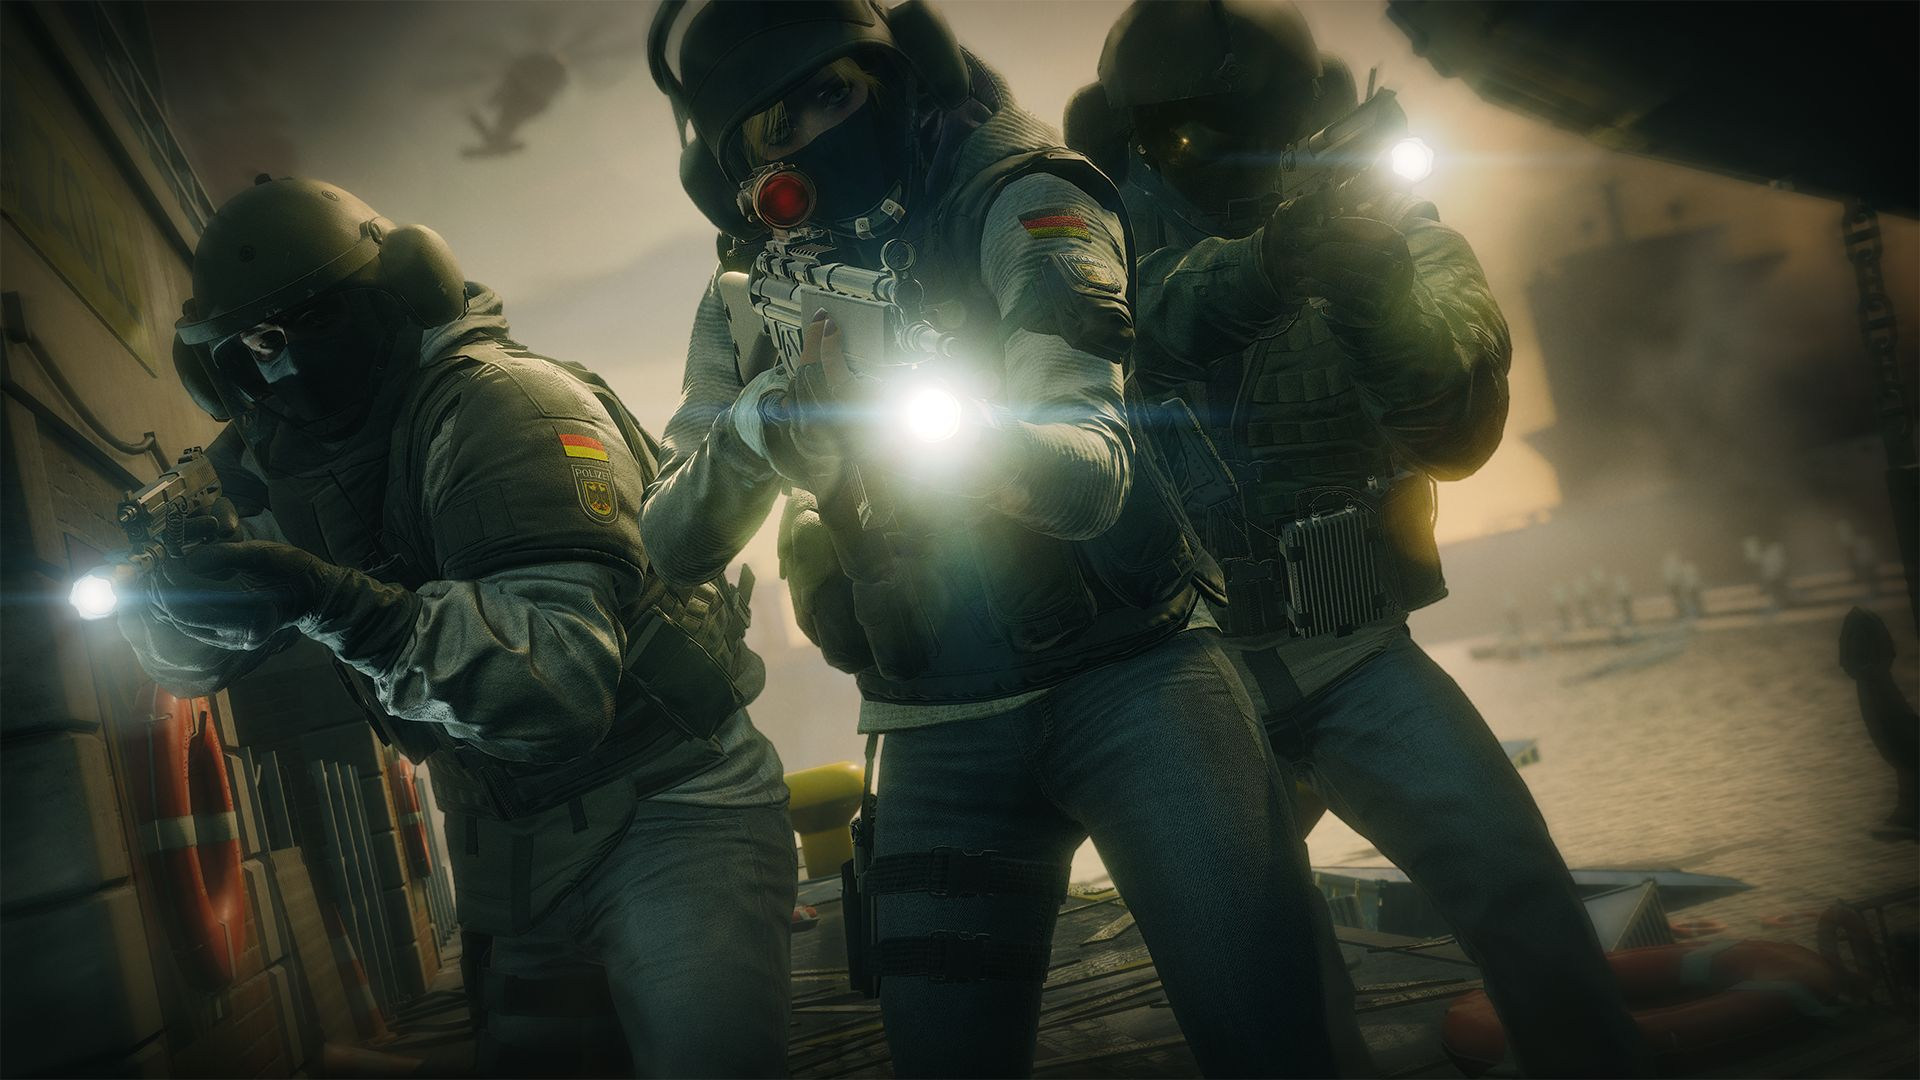 Rainbow Six Siege - there is single-player, but no story campaign